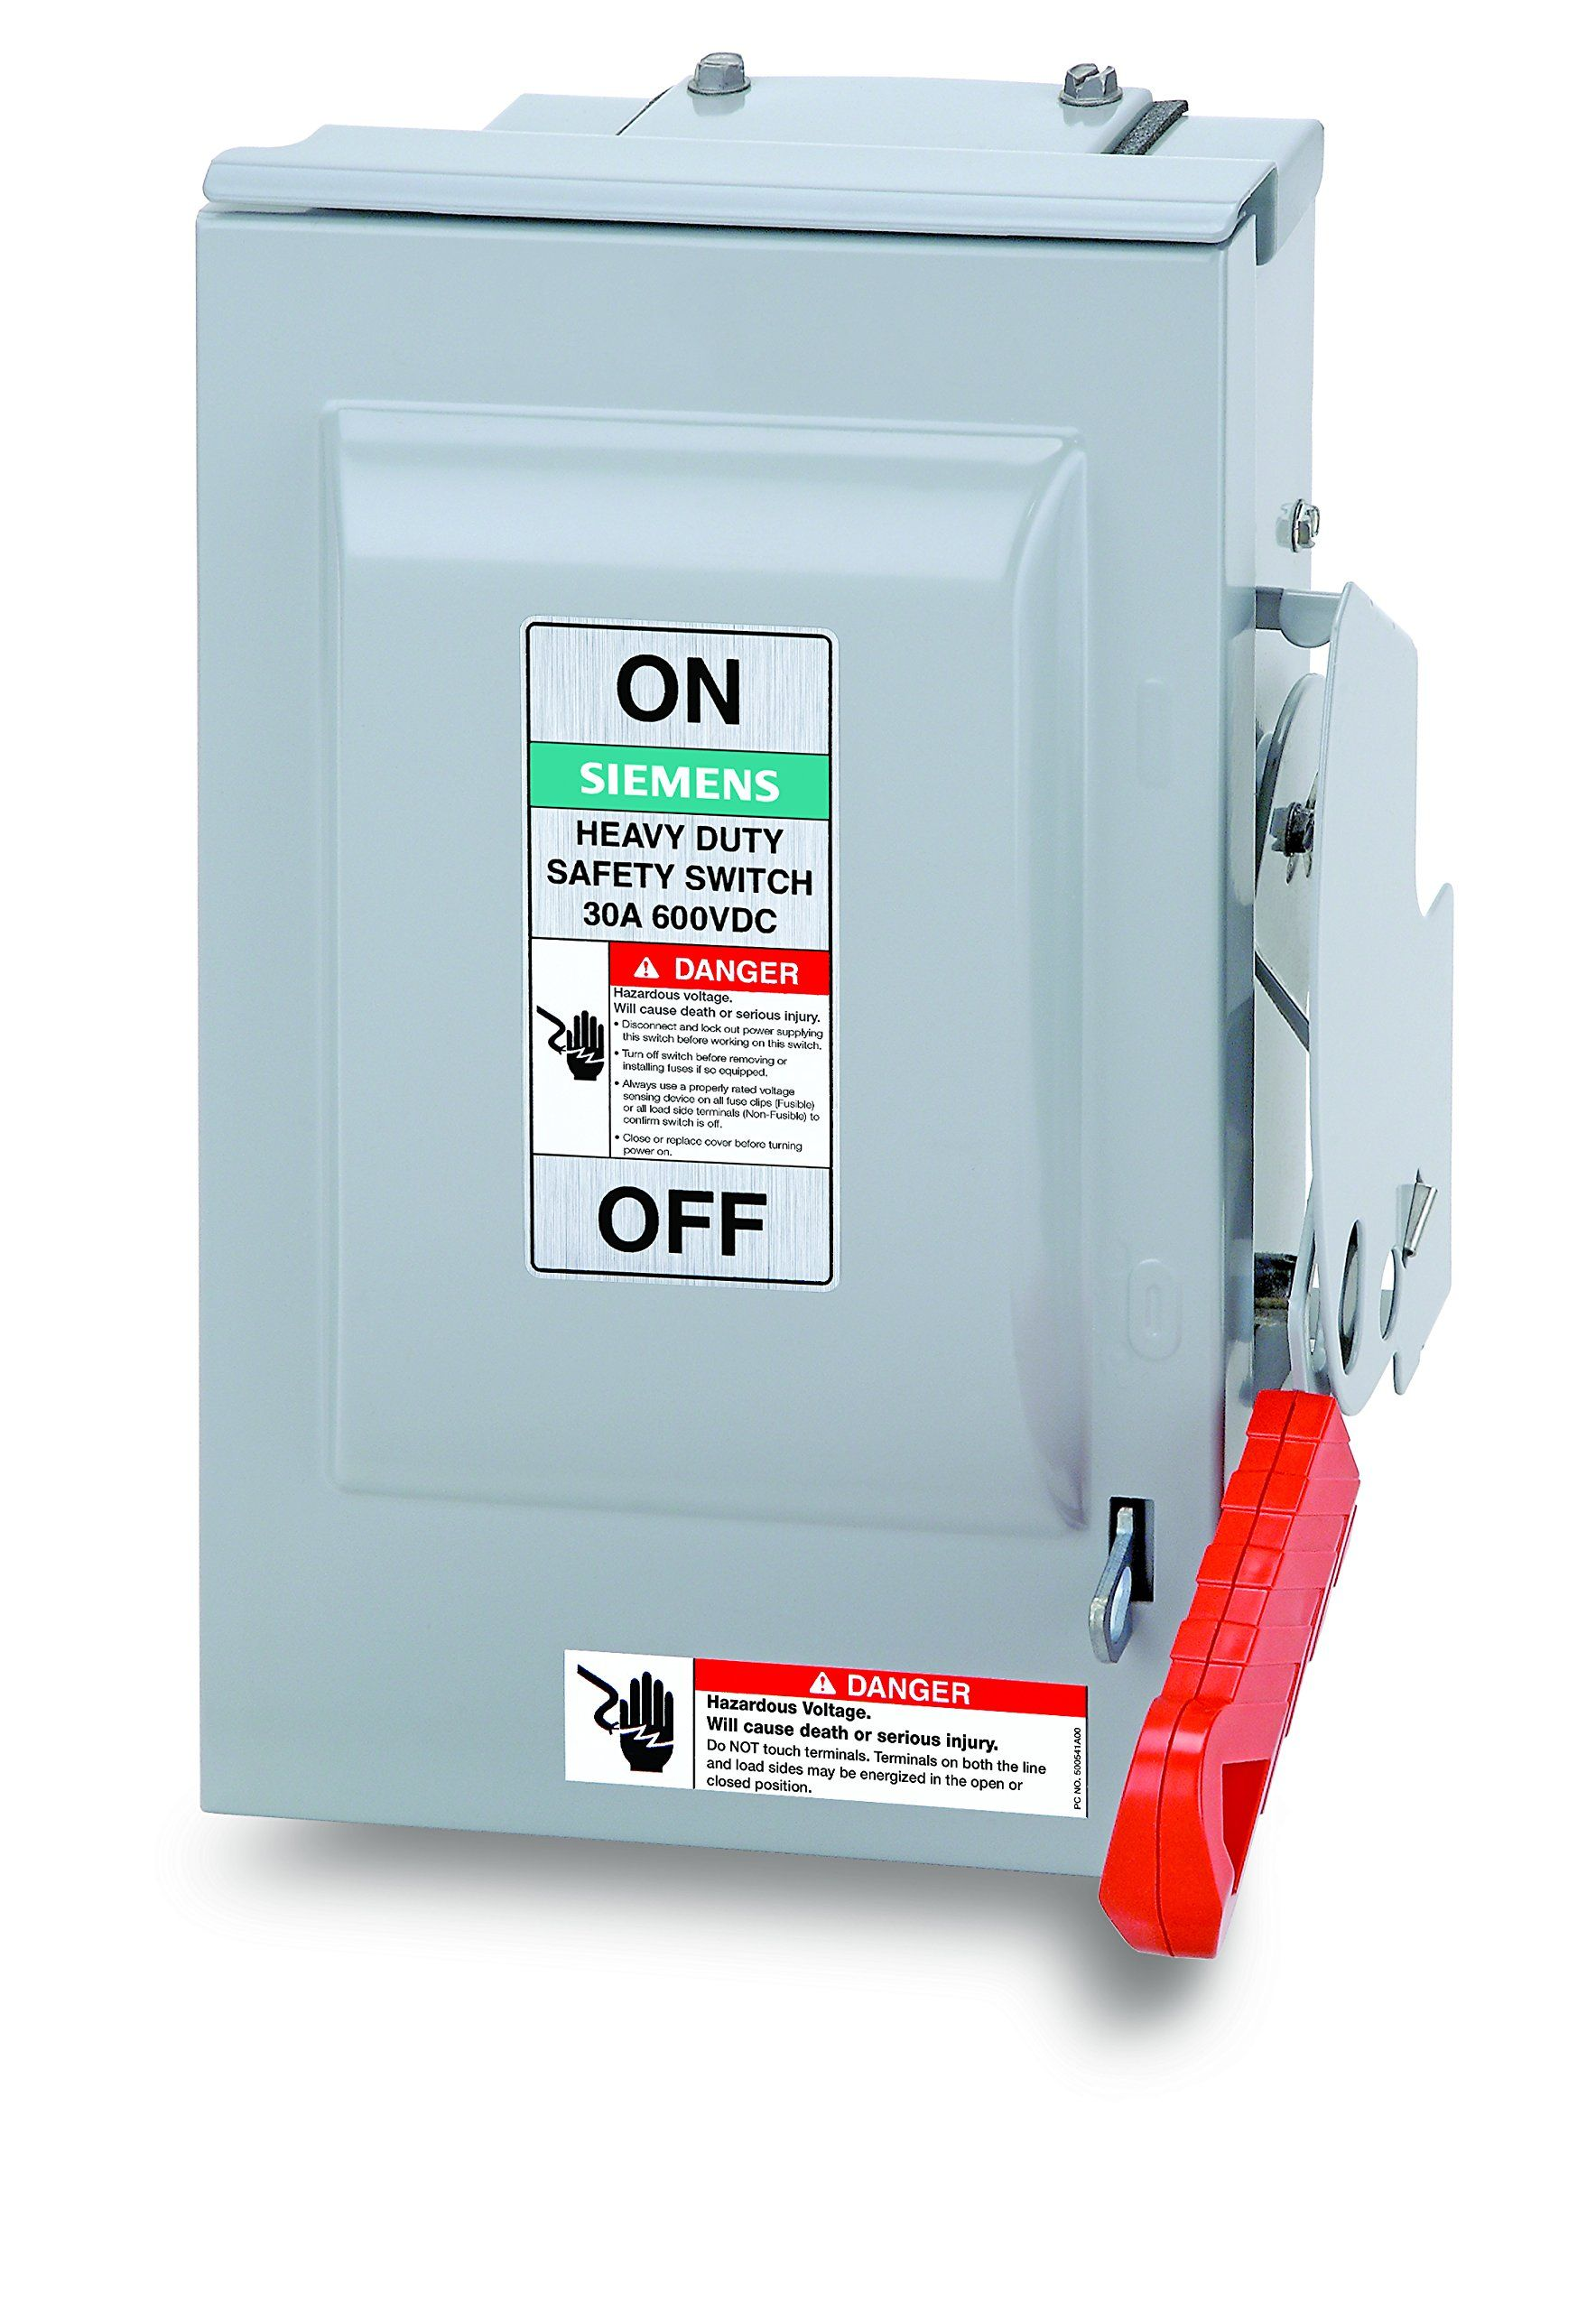 Siemens Us2 Hnf361rpv 30amp 3 Pole 600volt Dc Pv 3 Wire N Fused Heavy Duty Safety Switches Read More At The Image Link This Safety Switch Switches Siemens